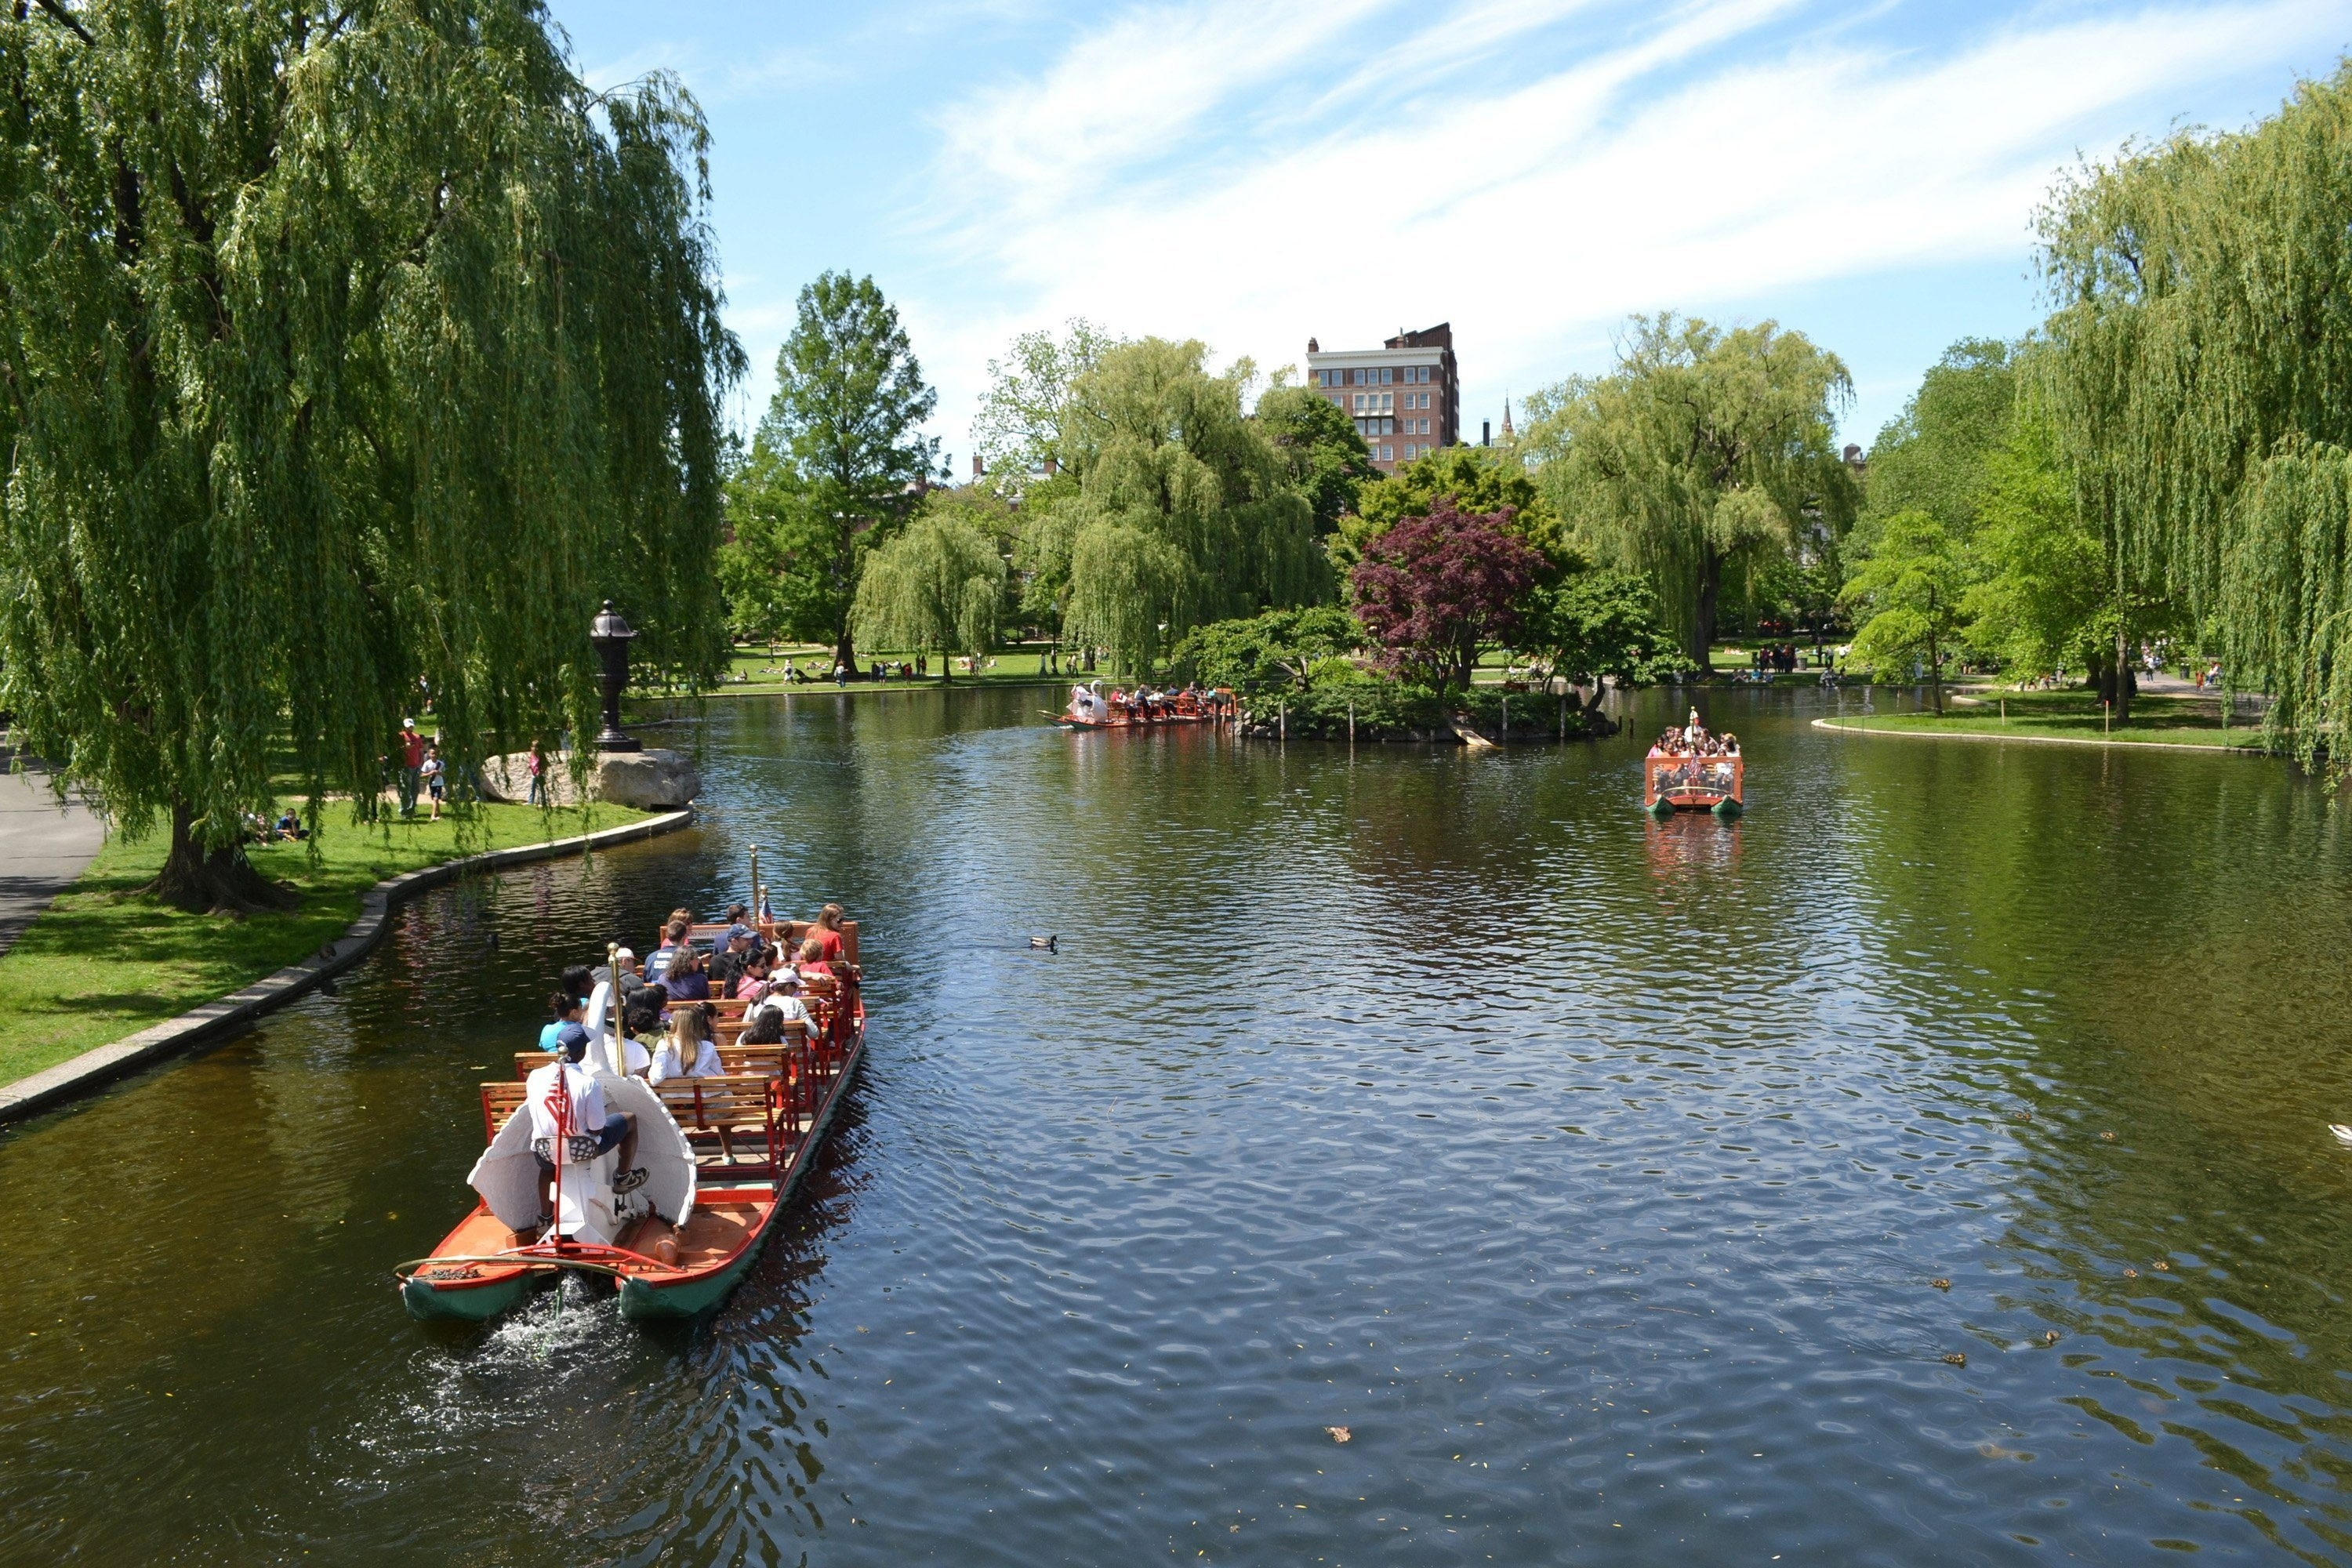 Swan boats are one of the major attractions in the Public Garden at the Boston Common, the oldest park in America.